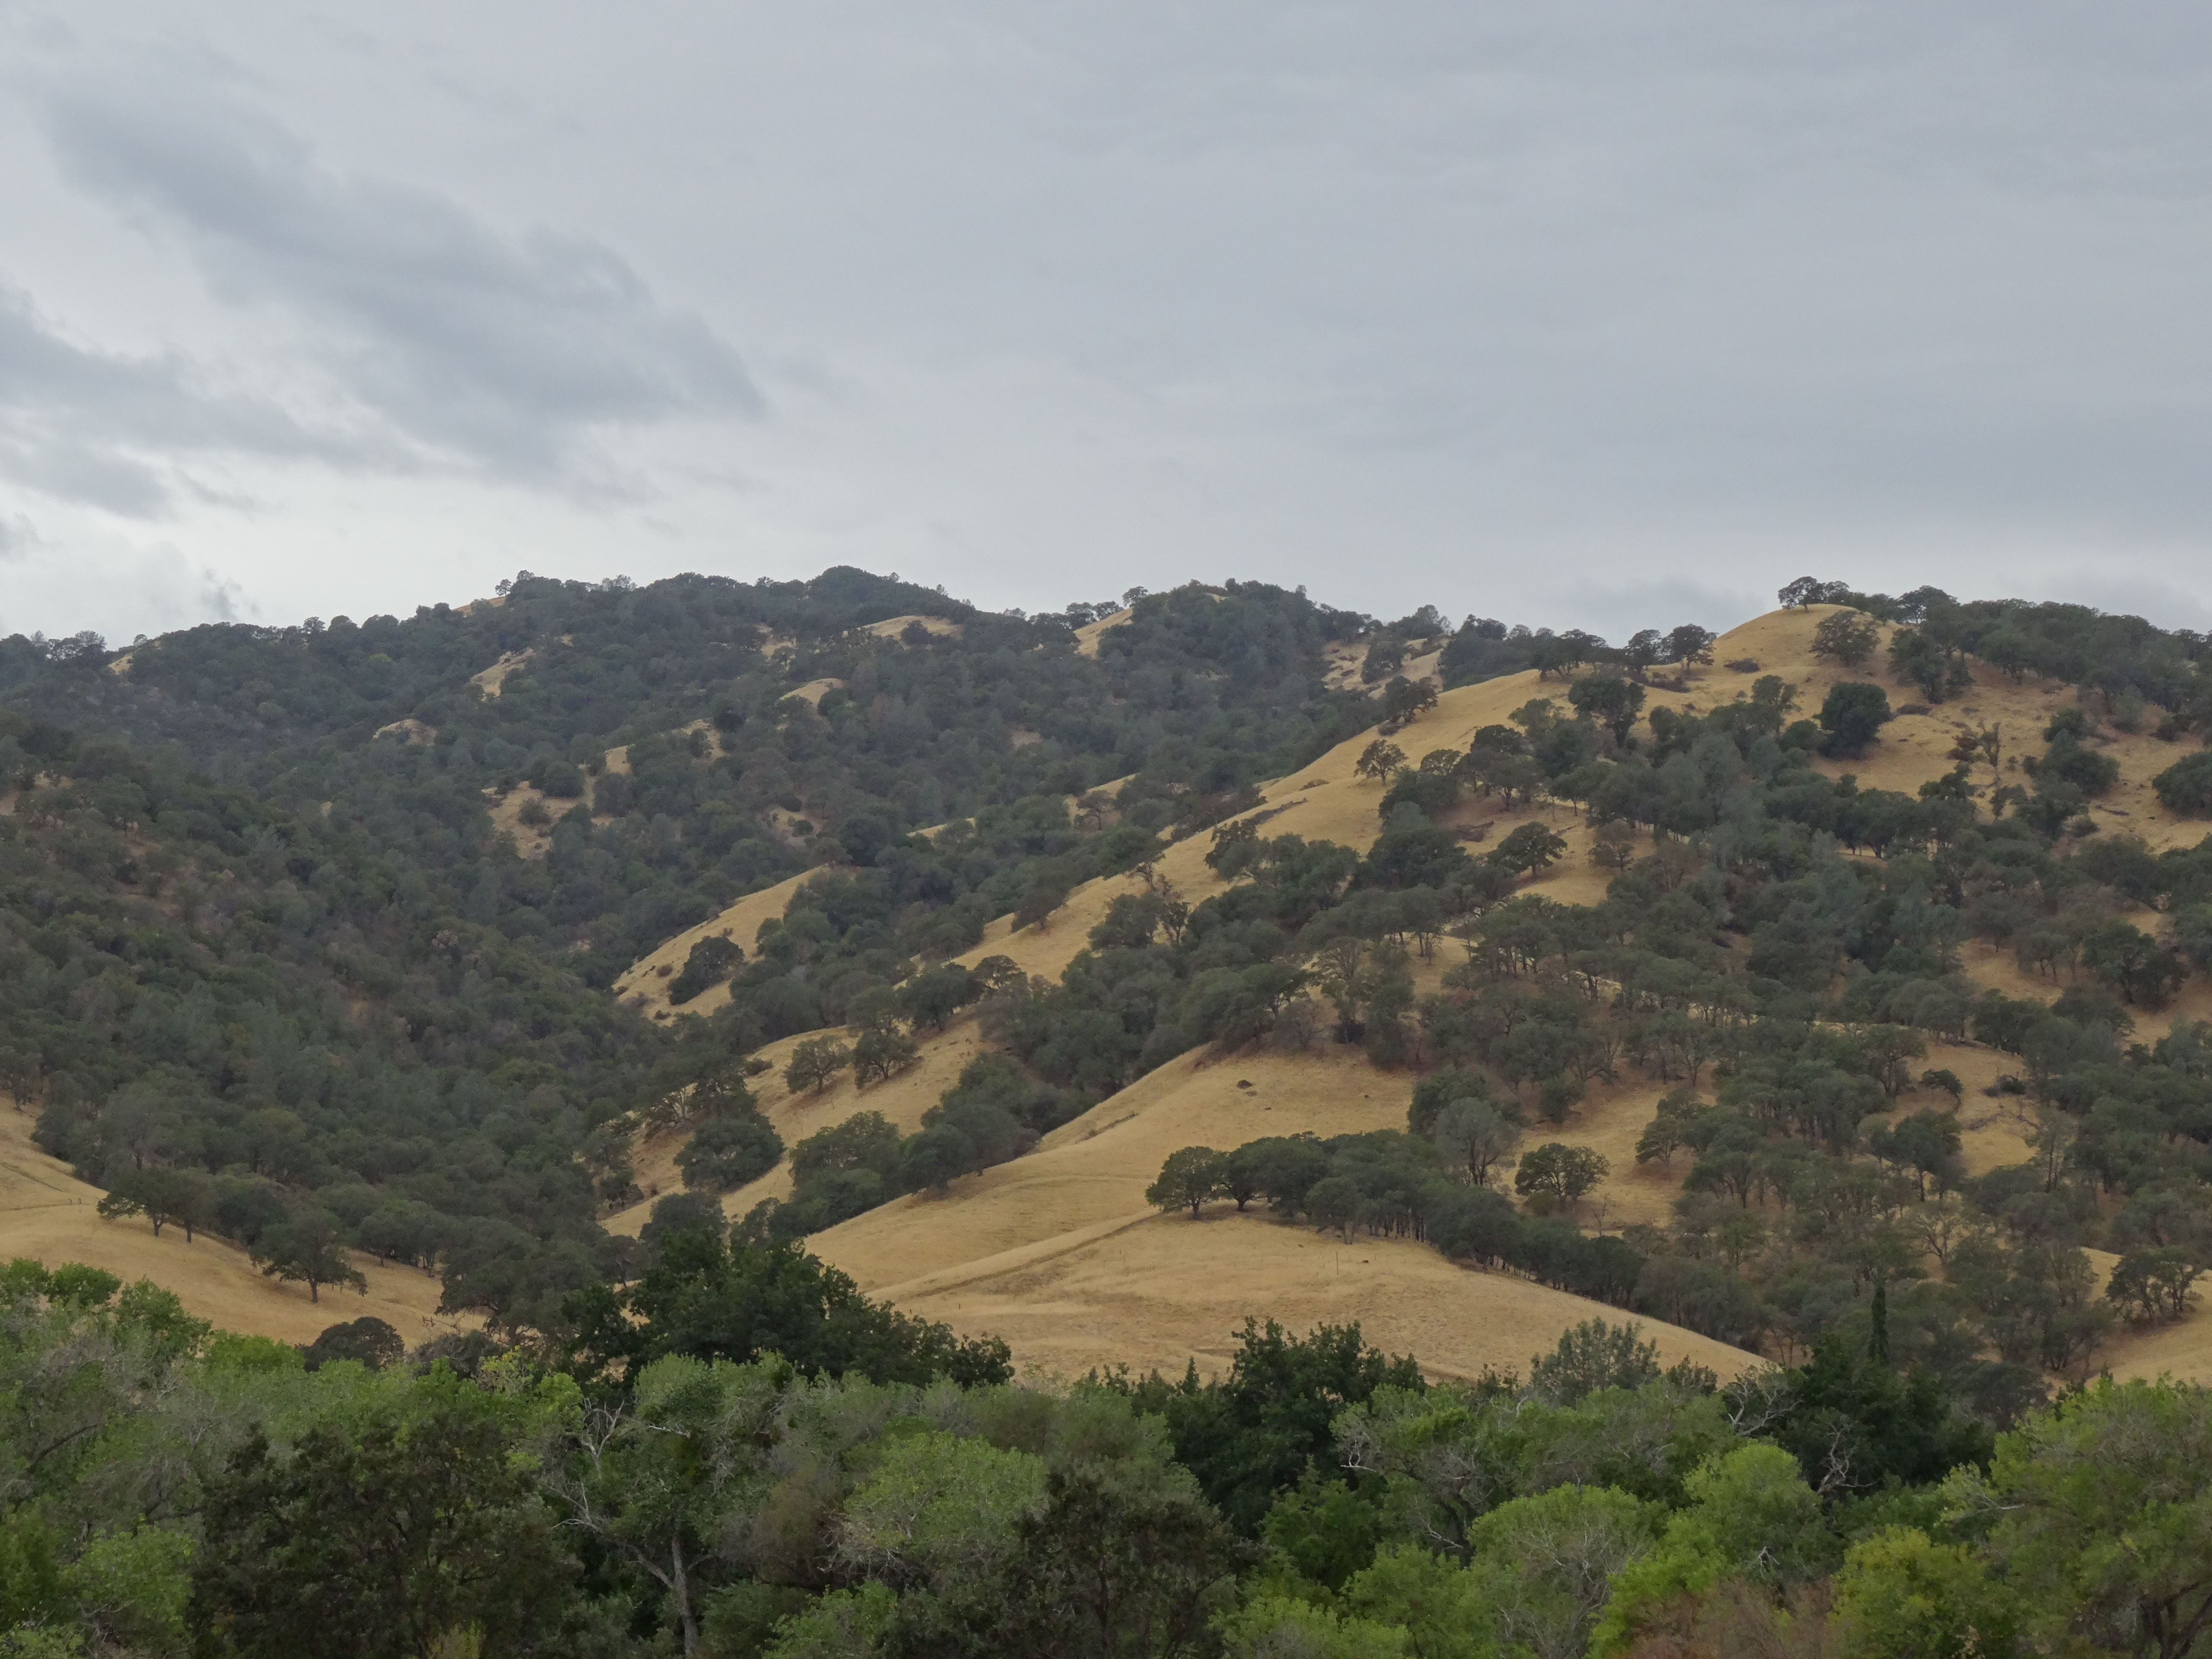 Arriving in Napa County